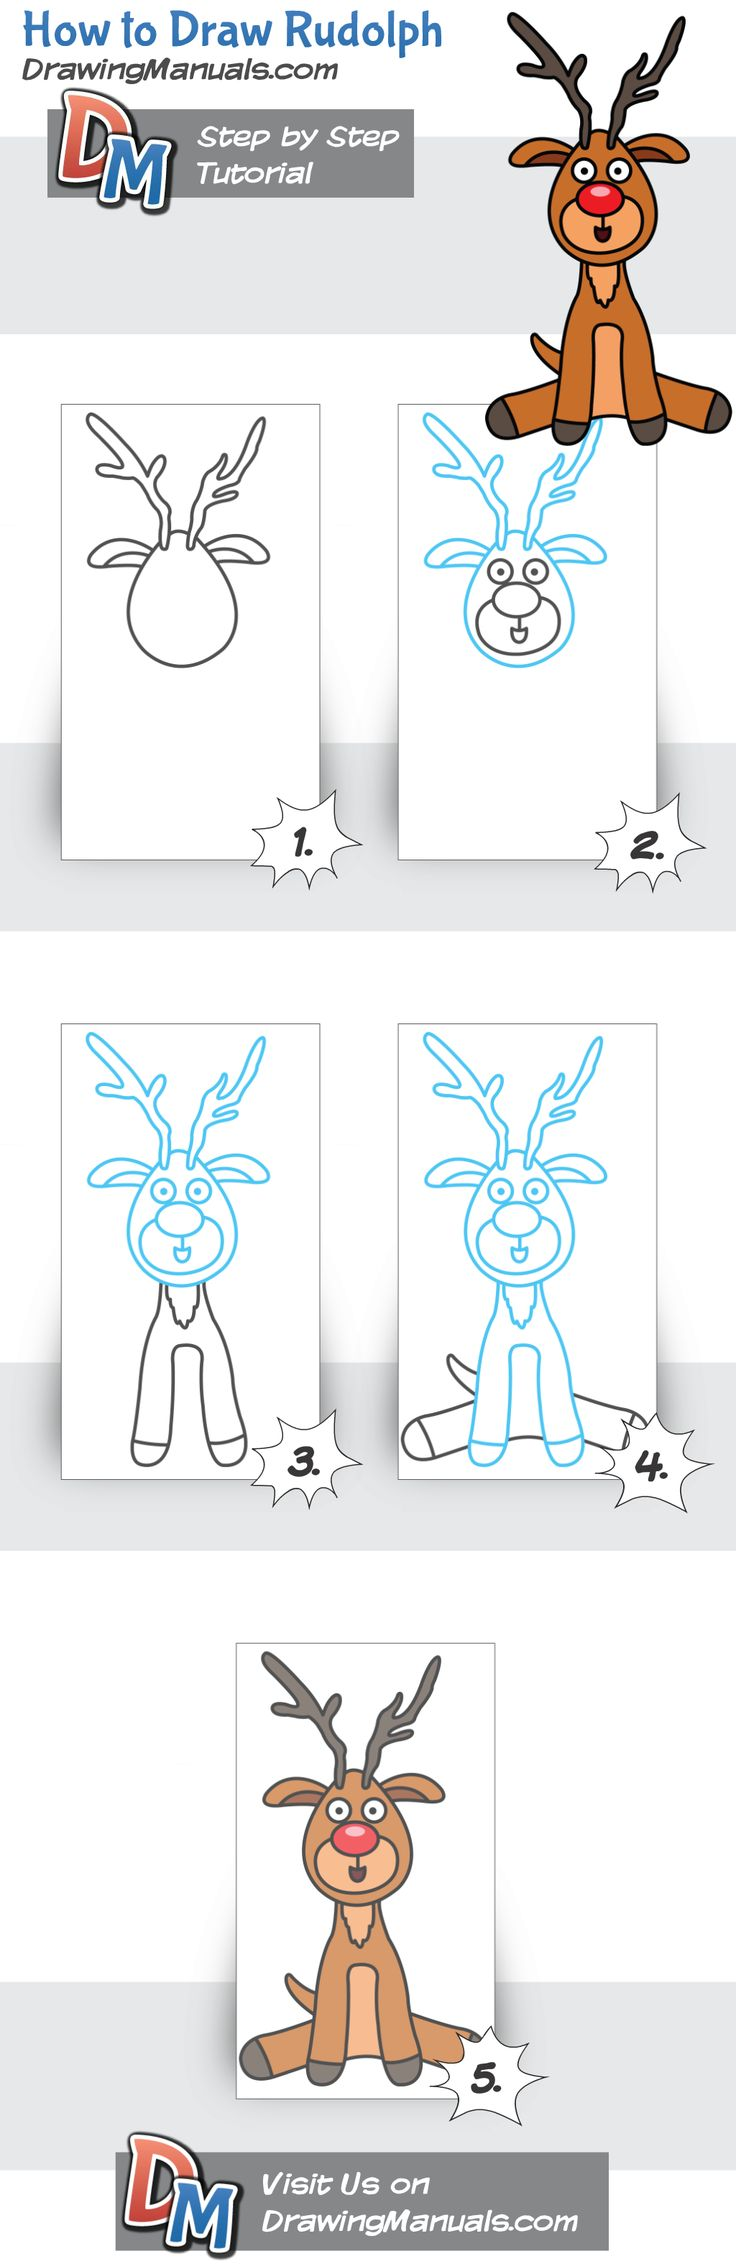 How to Draw Rudolph http://drawingmanuals.com/manual/how-to-draw-rudolph/